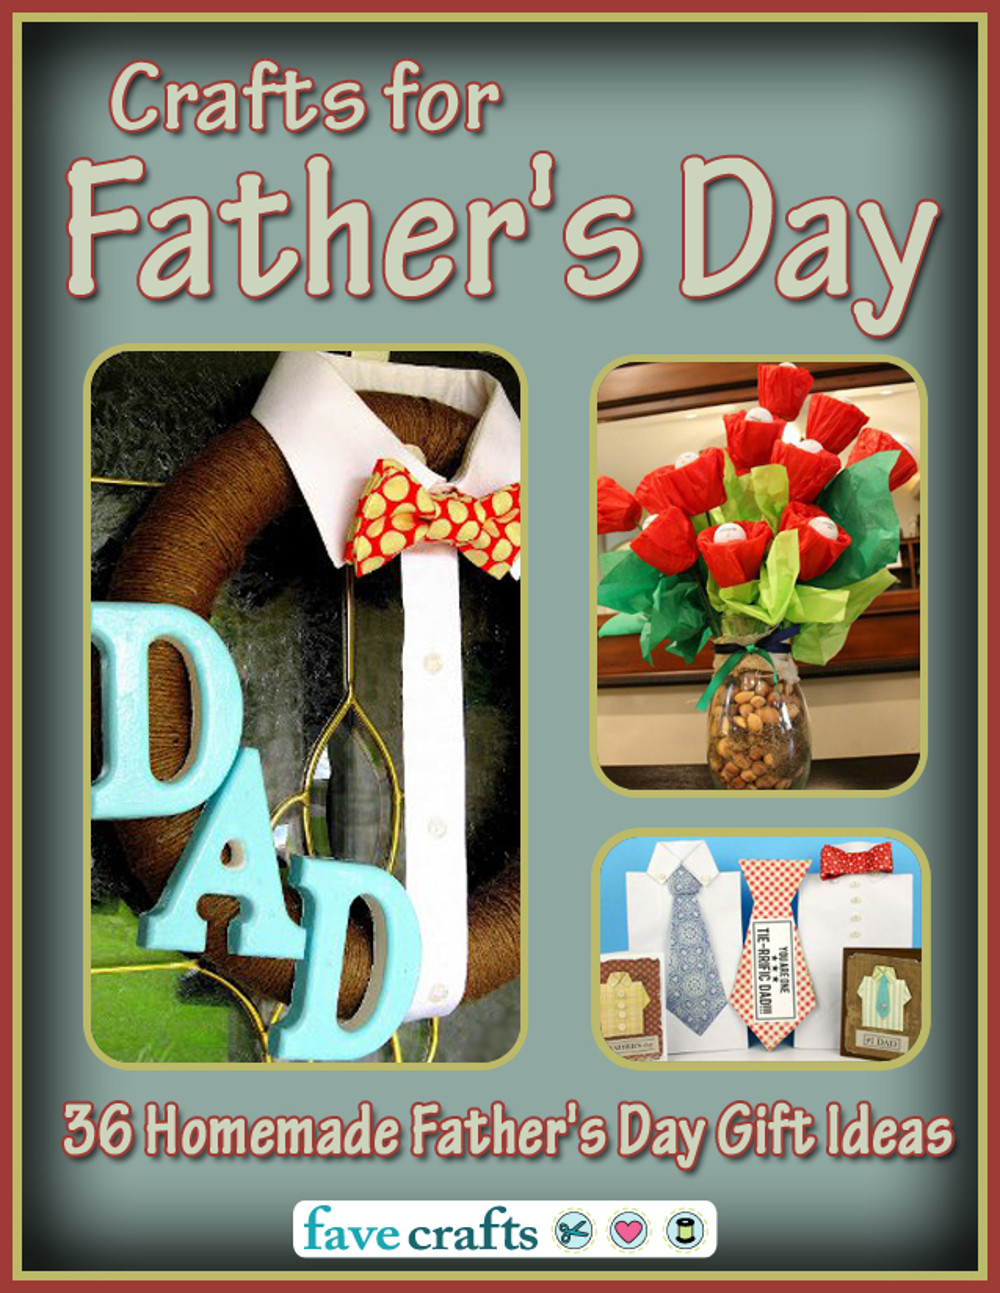 Best ideas about Father'S Day Craft Gift Ideas . Save or Pin Crafts for Father s Day 36 Homemade Father s Day Gift Now.